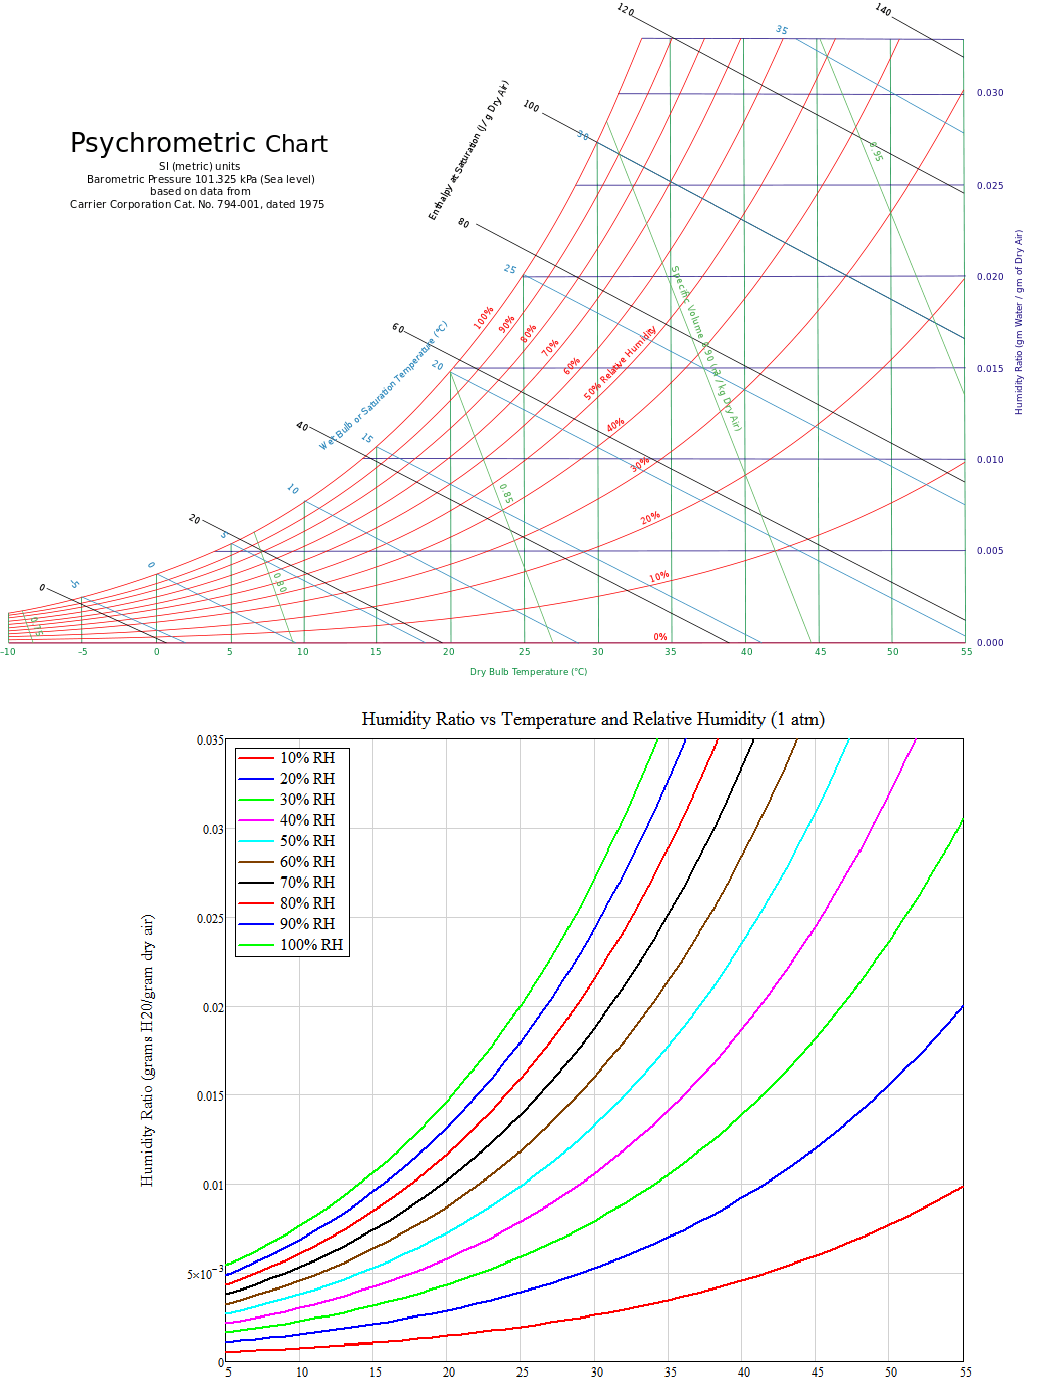 Converting specific humidity to relative humidity math figure 10 psychrometric chart vs fig 3 formula geenschuldenfo Choice Image